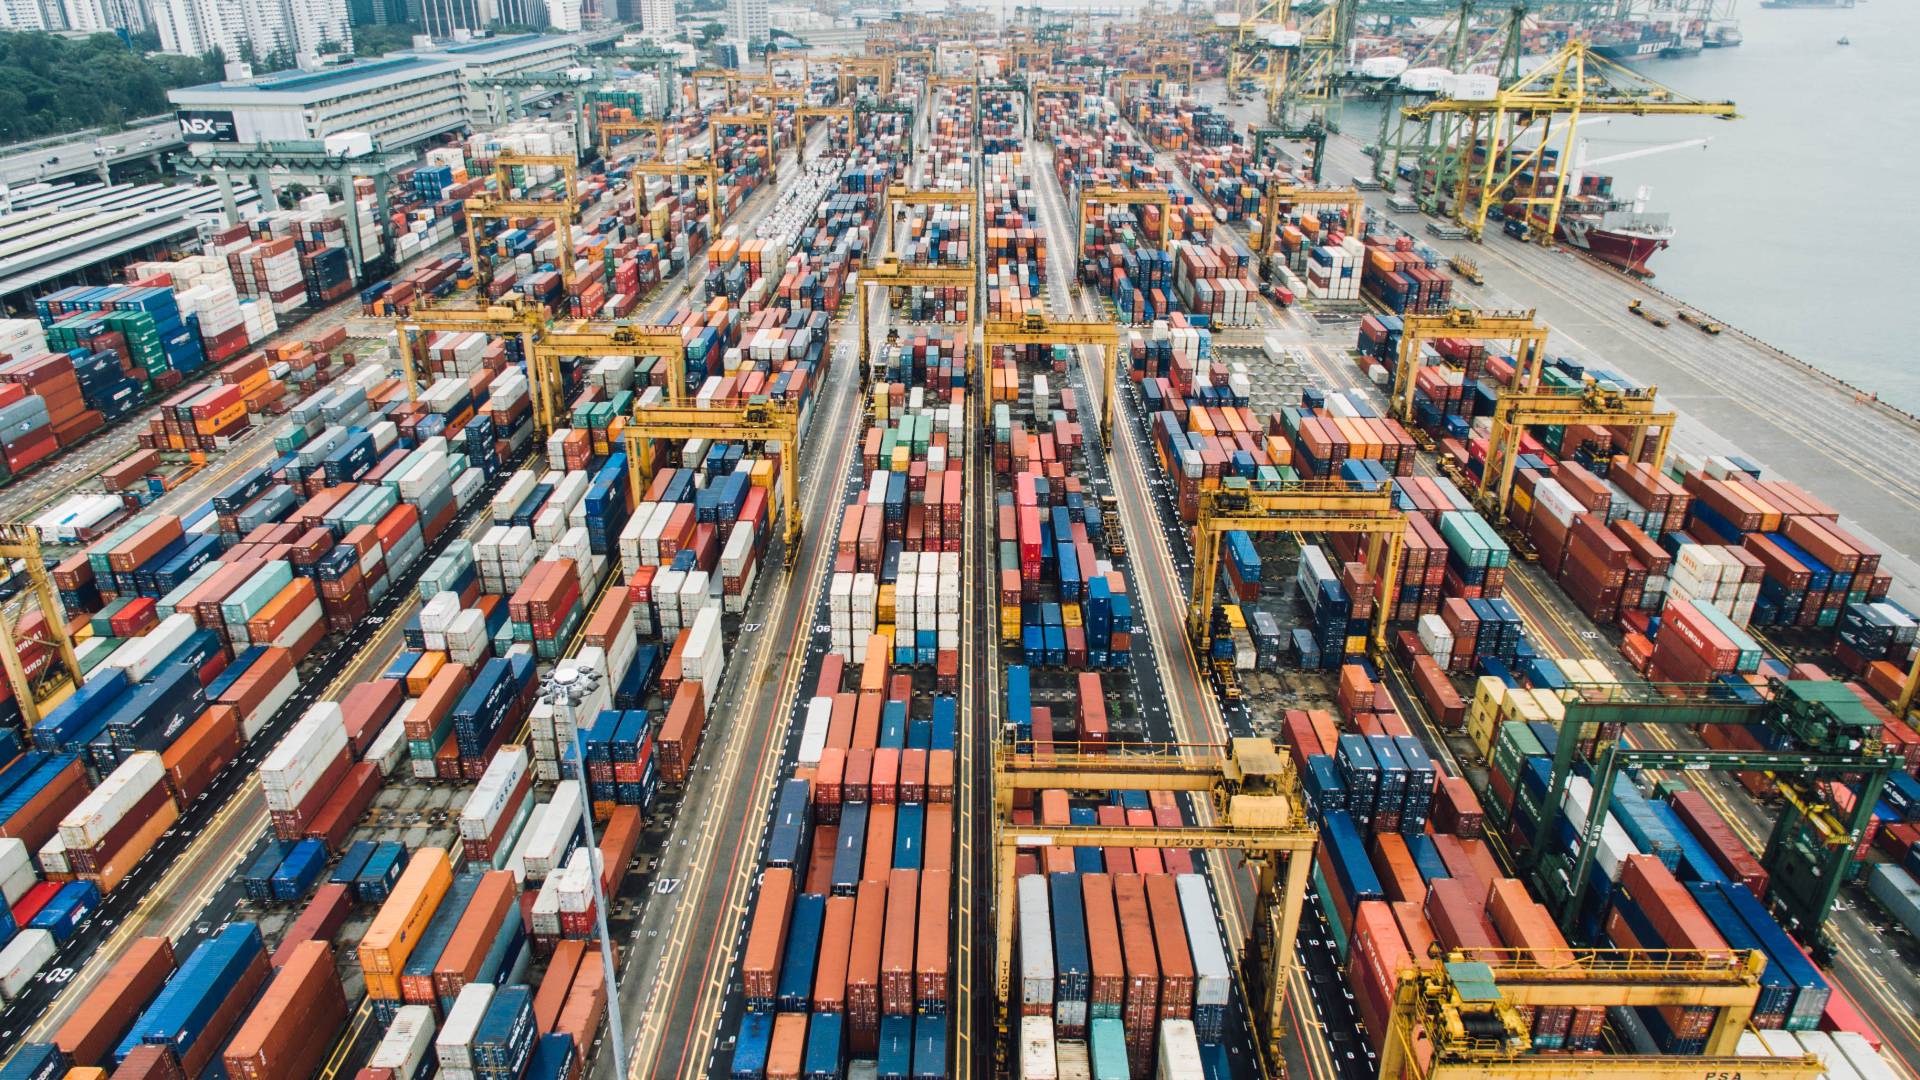 CyberOwl breaks into the Singaporean shipping market with Eastern Pacific Shipping and Techstars